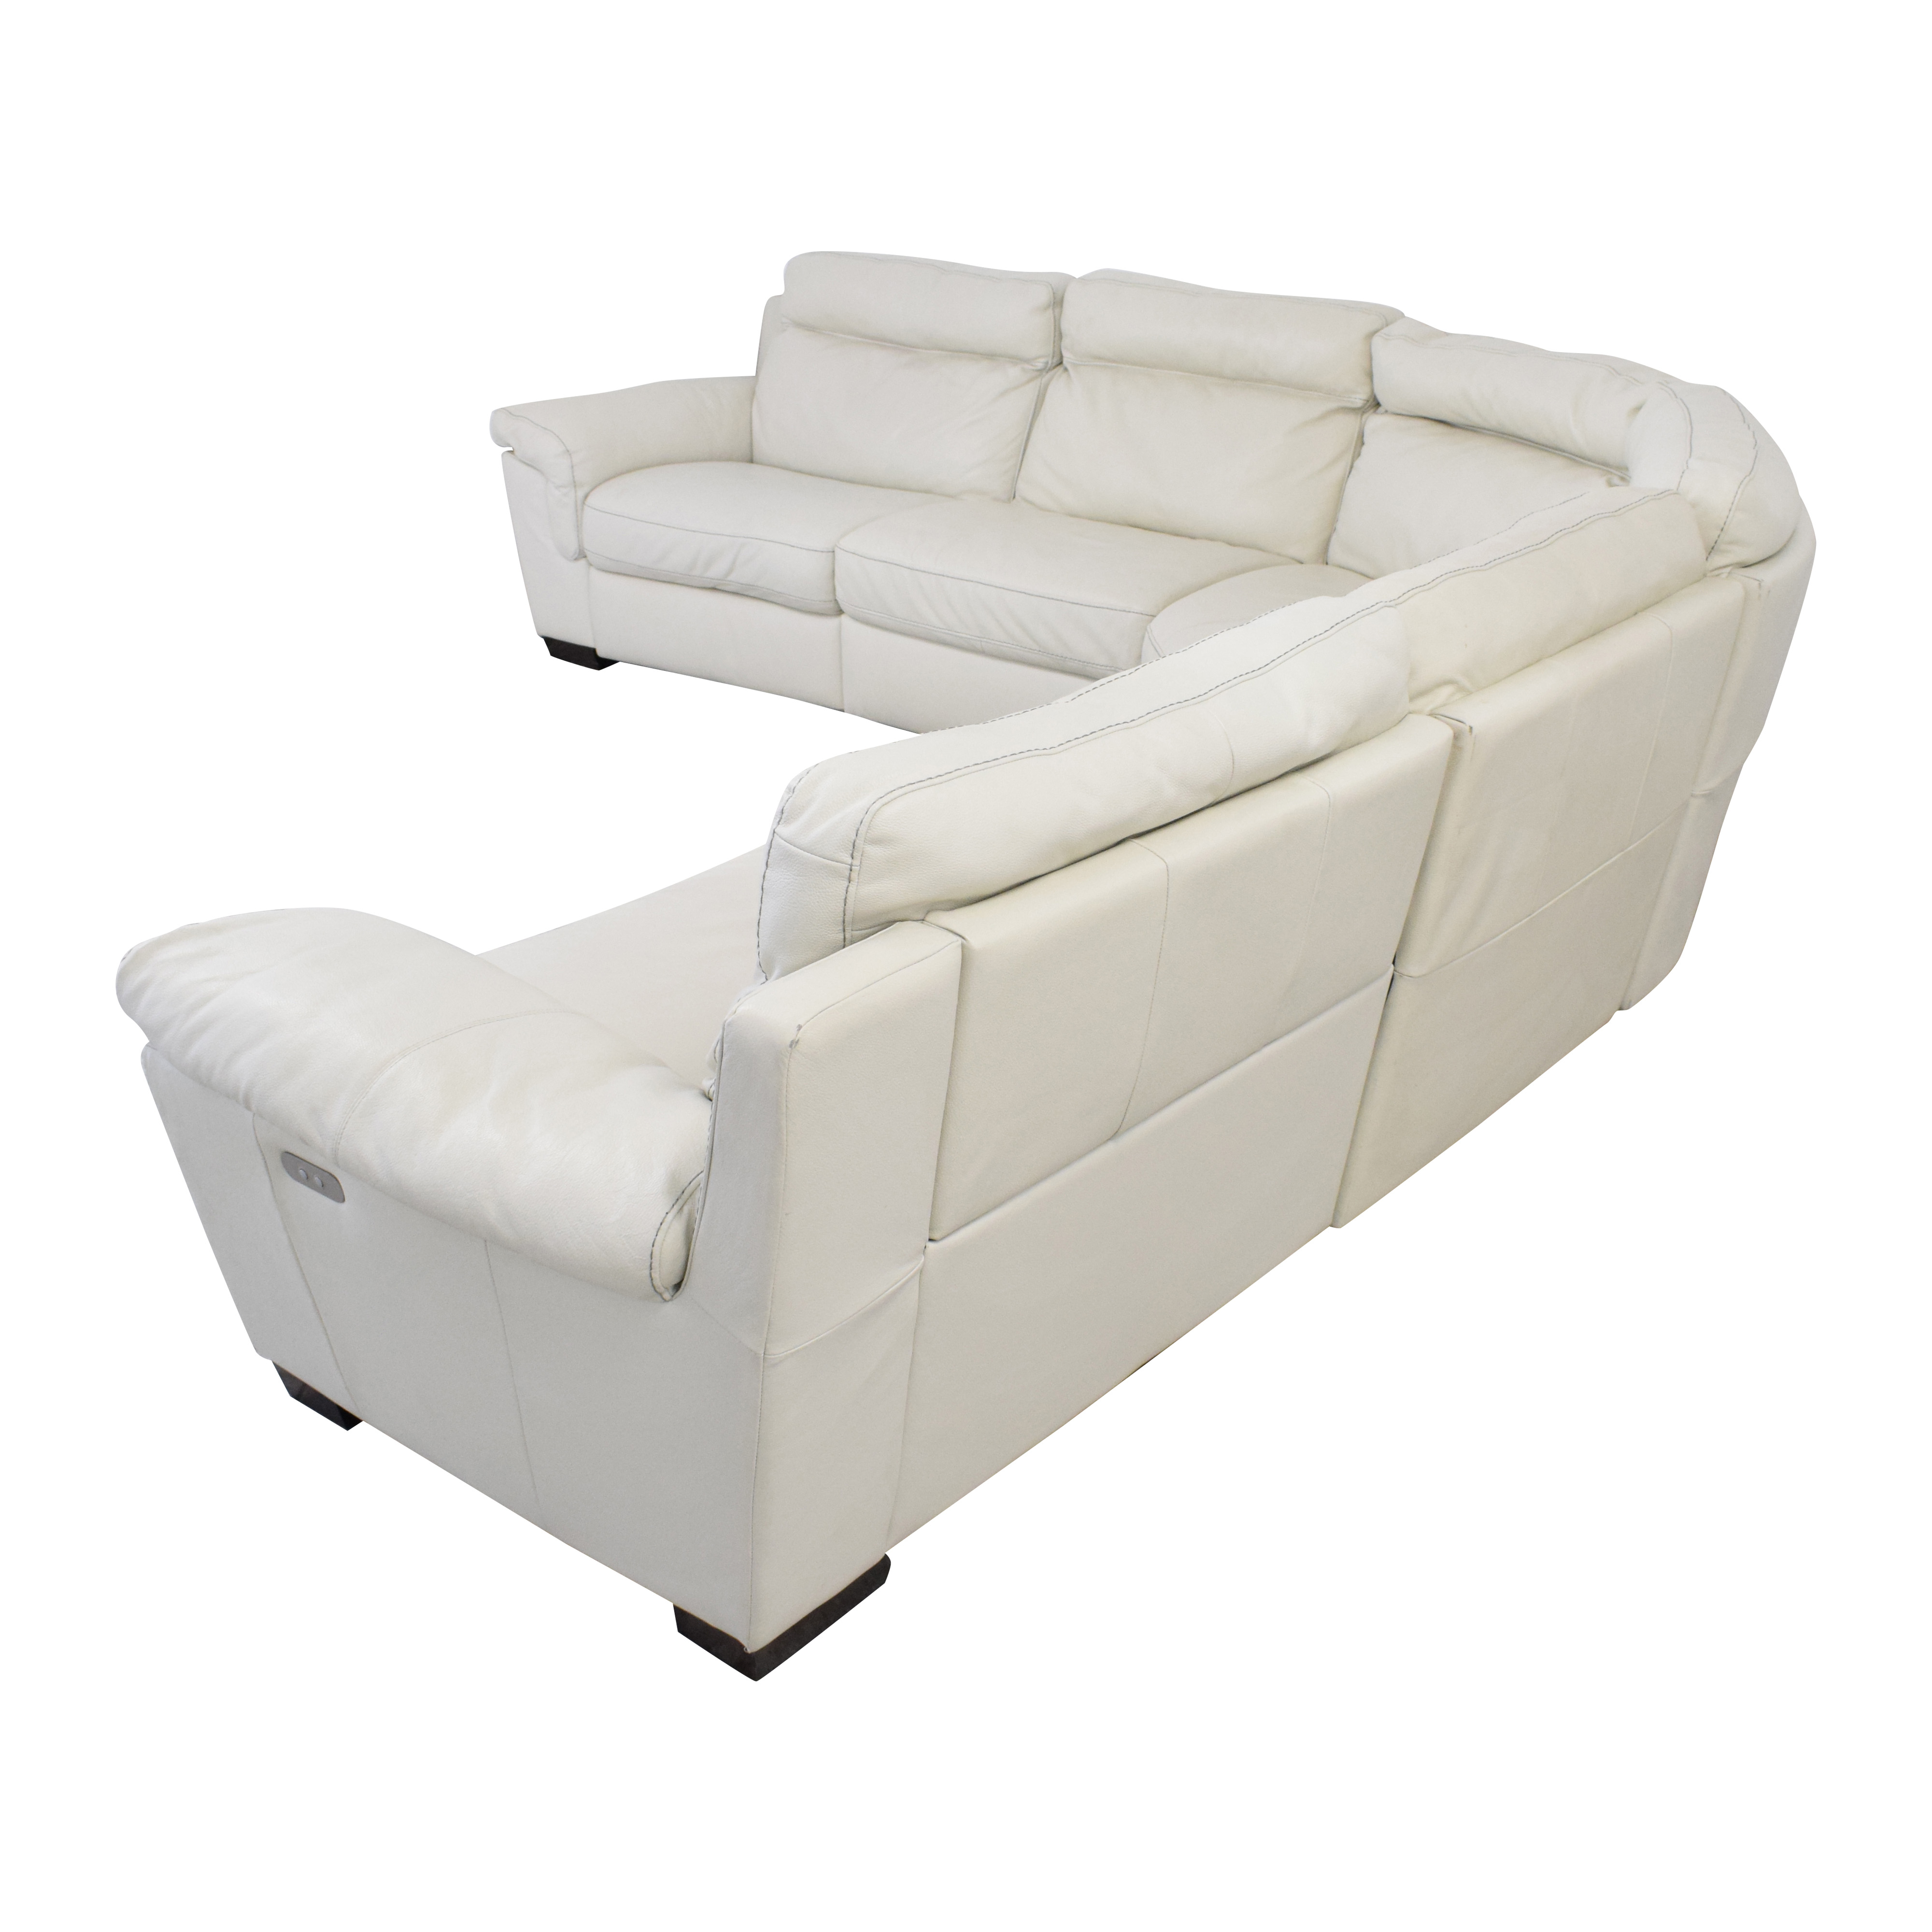 Macy's Macy's Leather Sectional Sofa with Reclining Seats Sofas